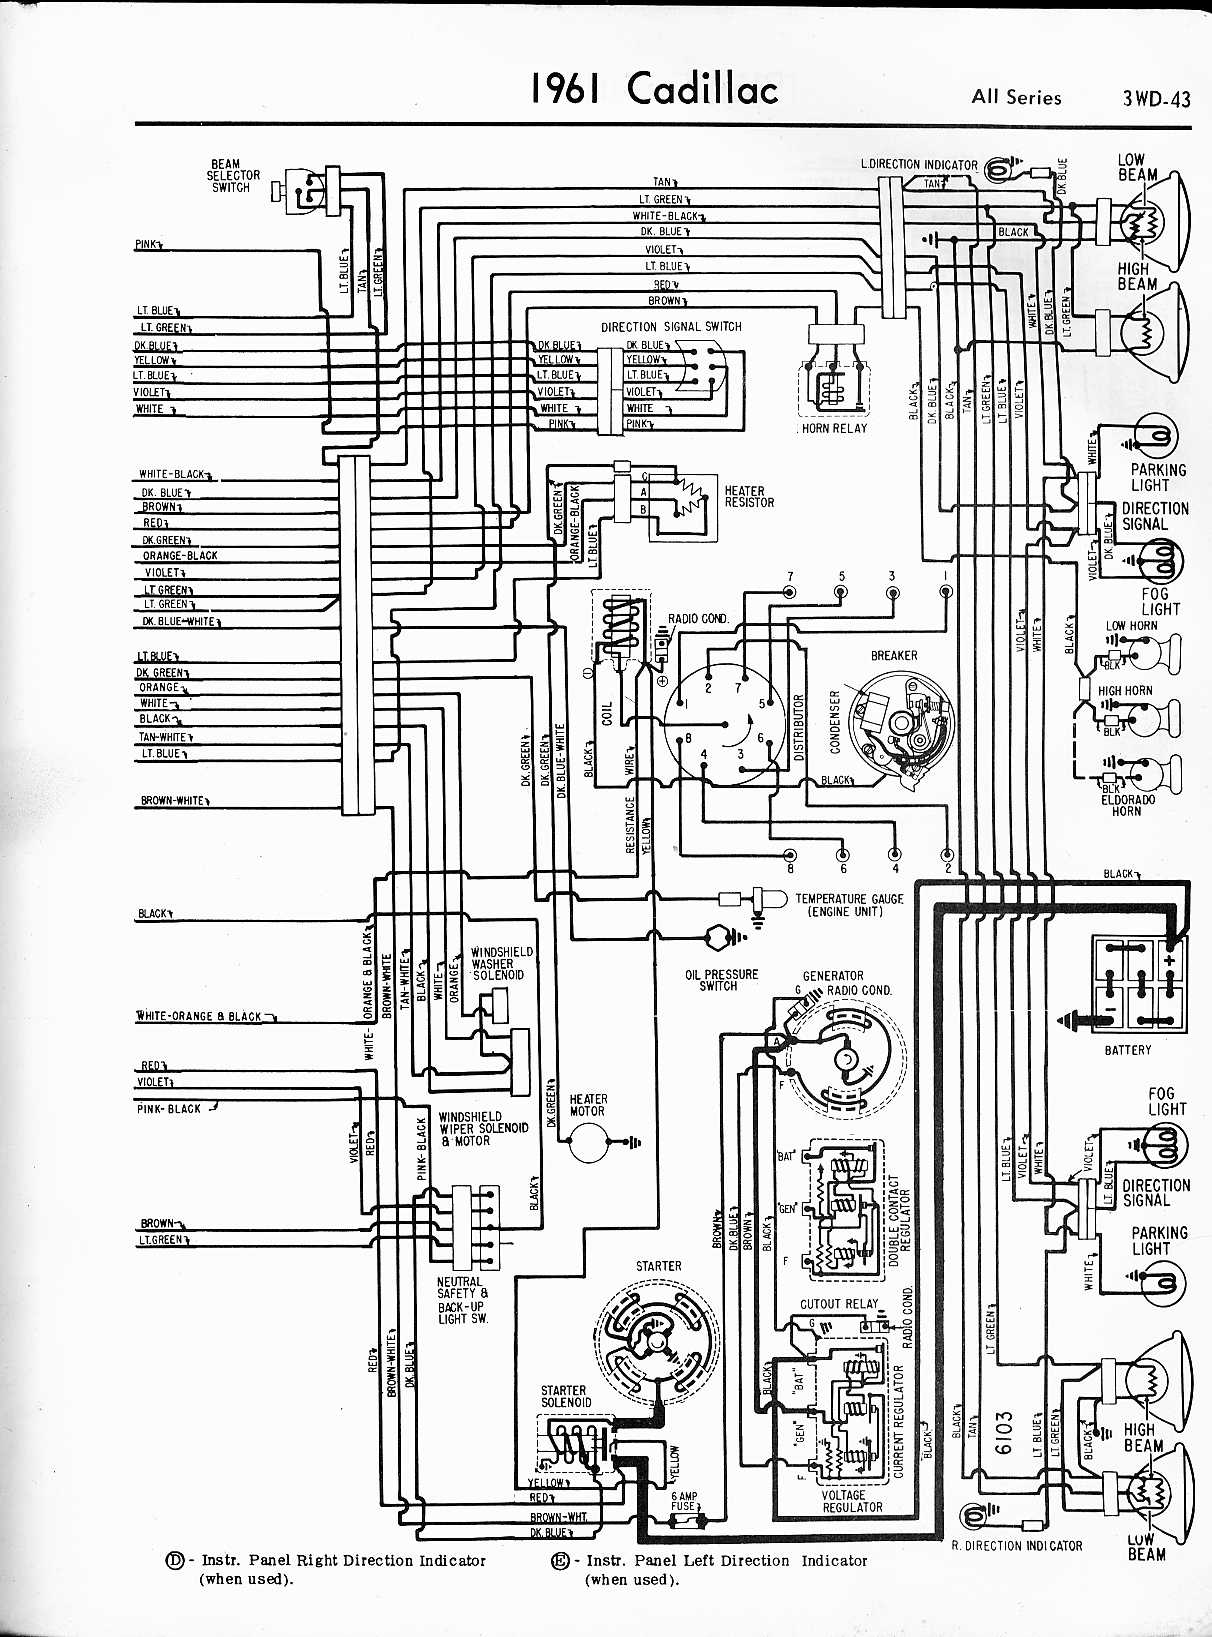 Car Diagrams 1961 Cadillac Wiring Diagram 1967 Plymouth Apache Truck Radio Simple Diagramscadillac 1957 1965 Chevy